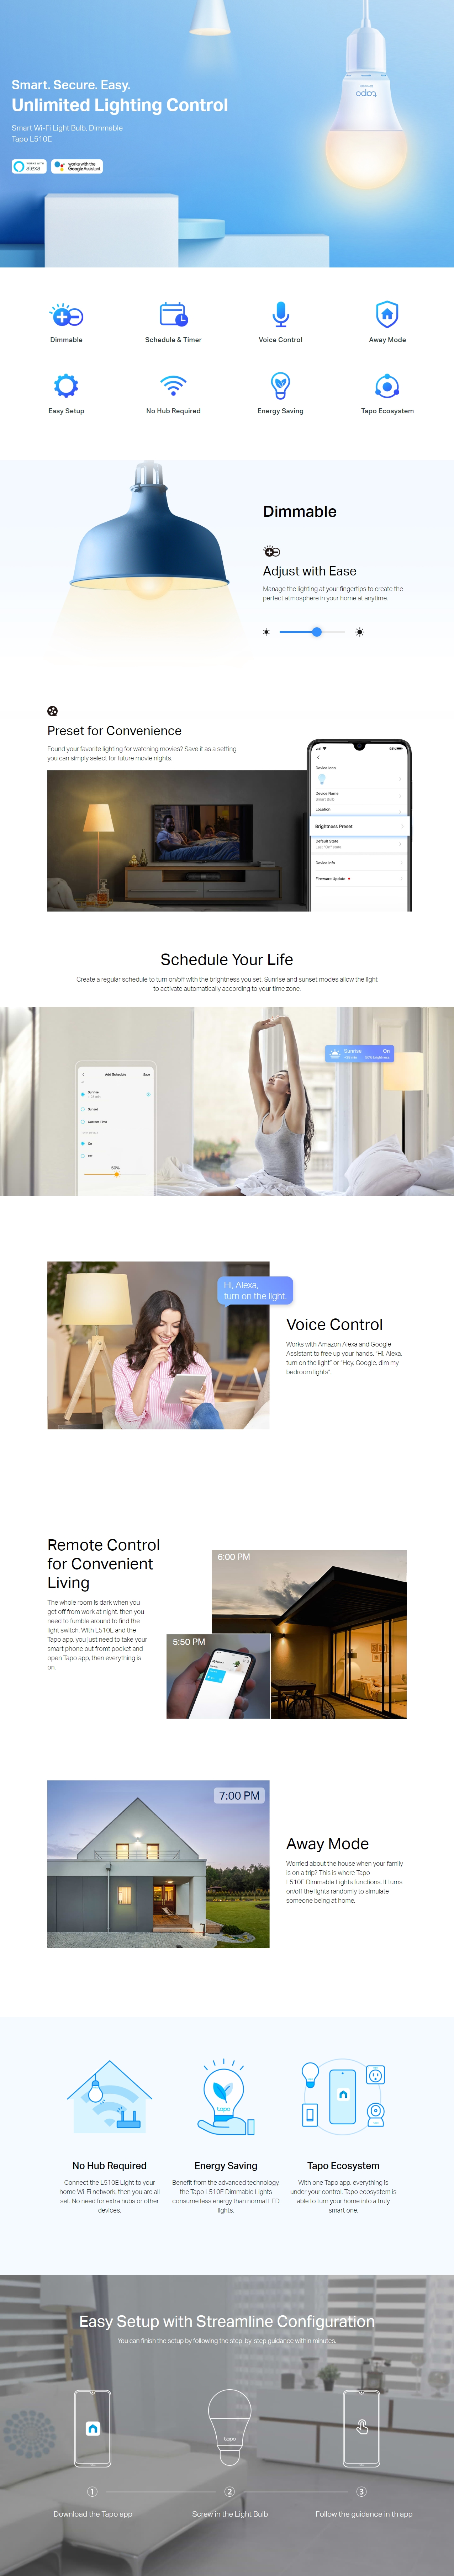 A large marketing image providing additional information about the product TP-LINK Tapo L510E Smart Bulb - Additional alt info not provided